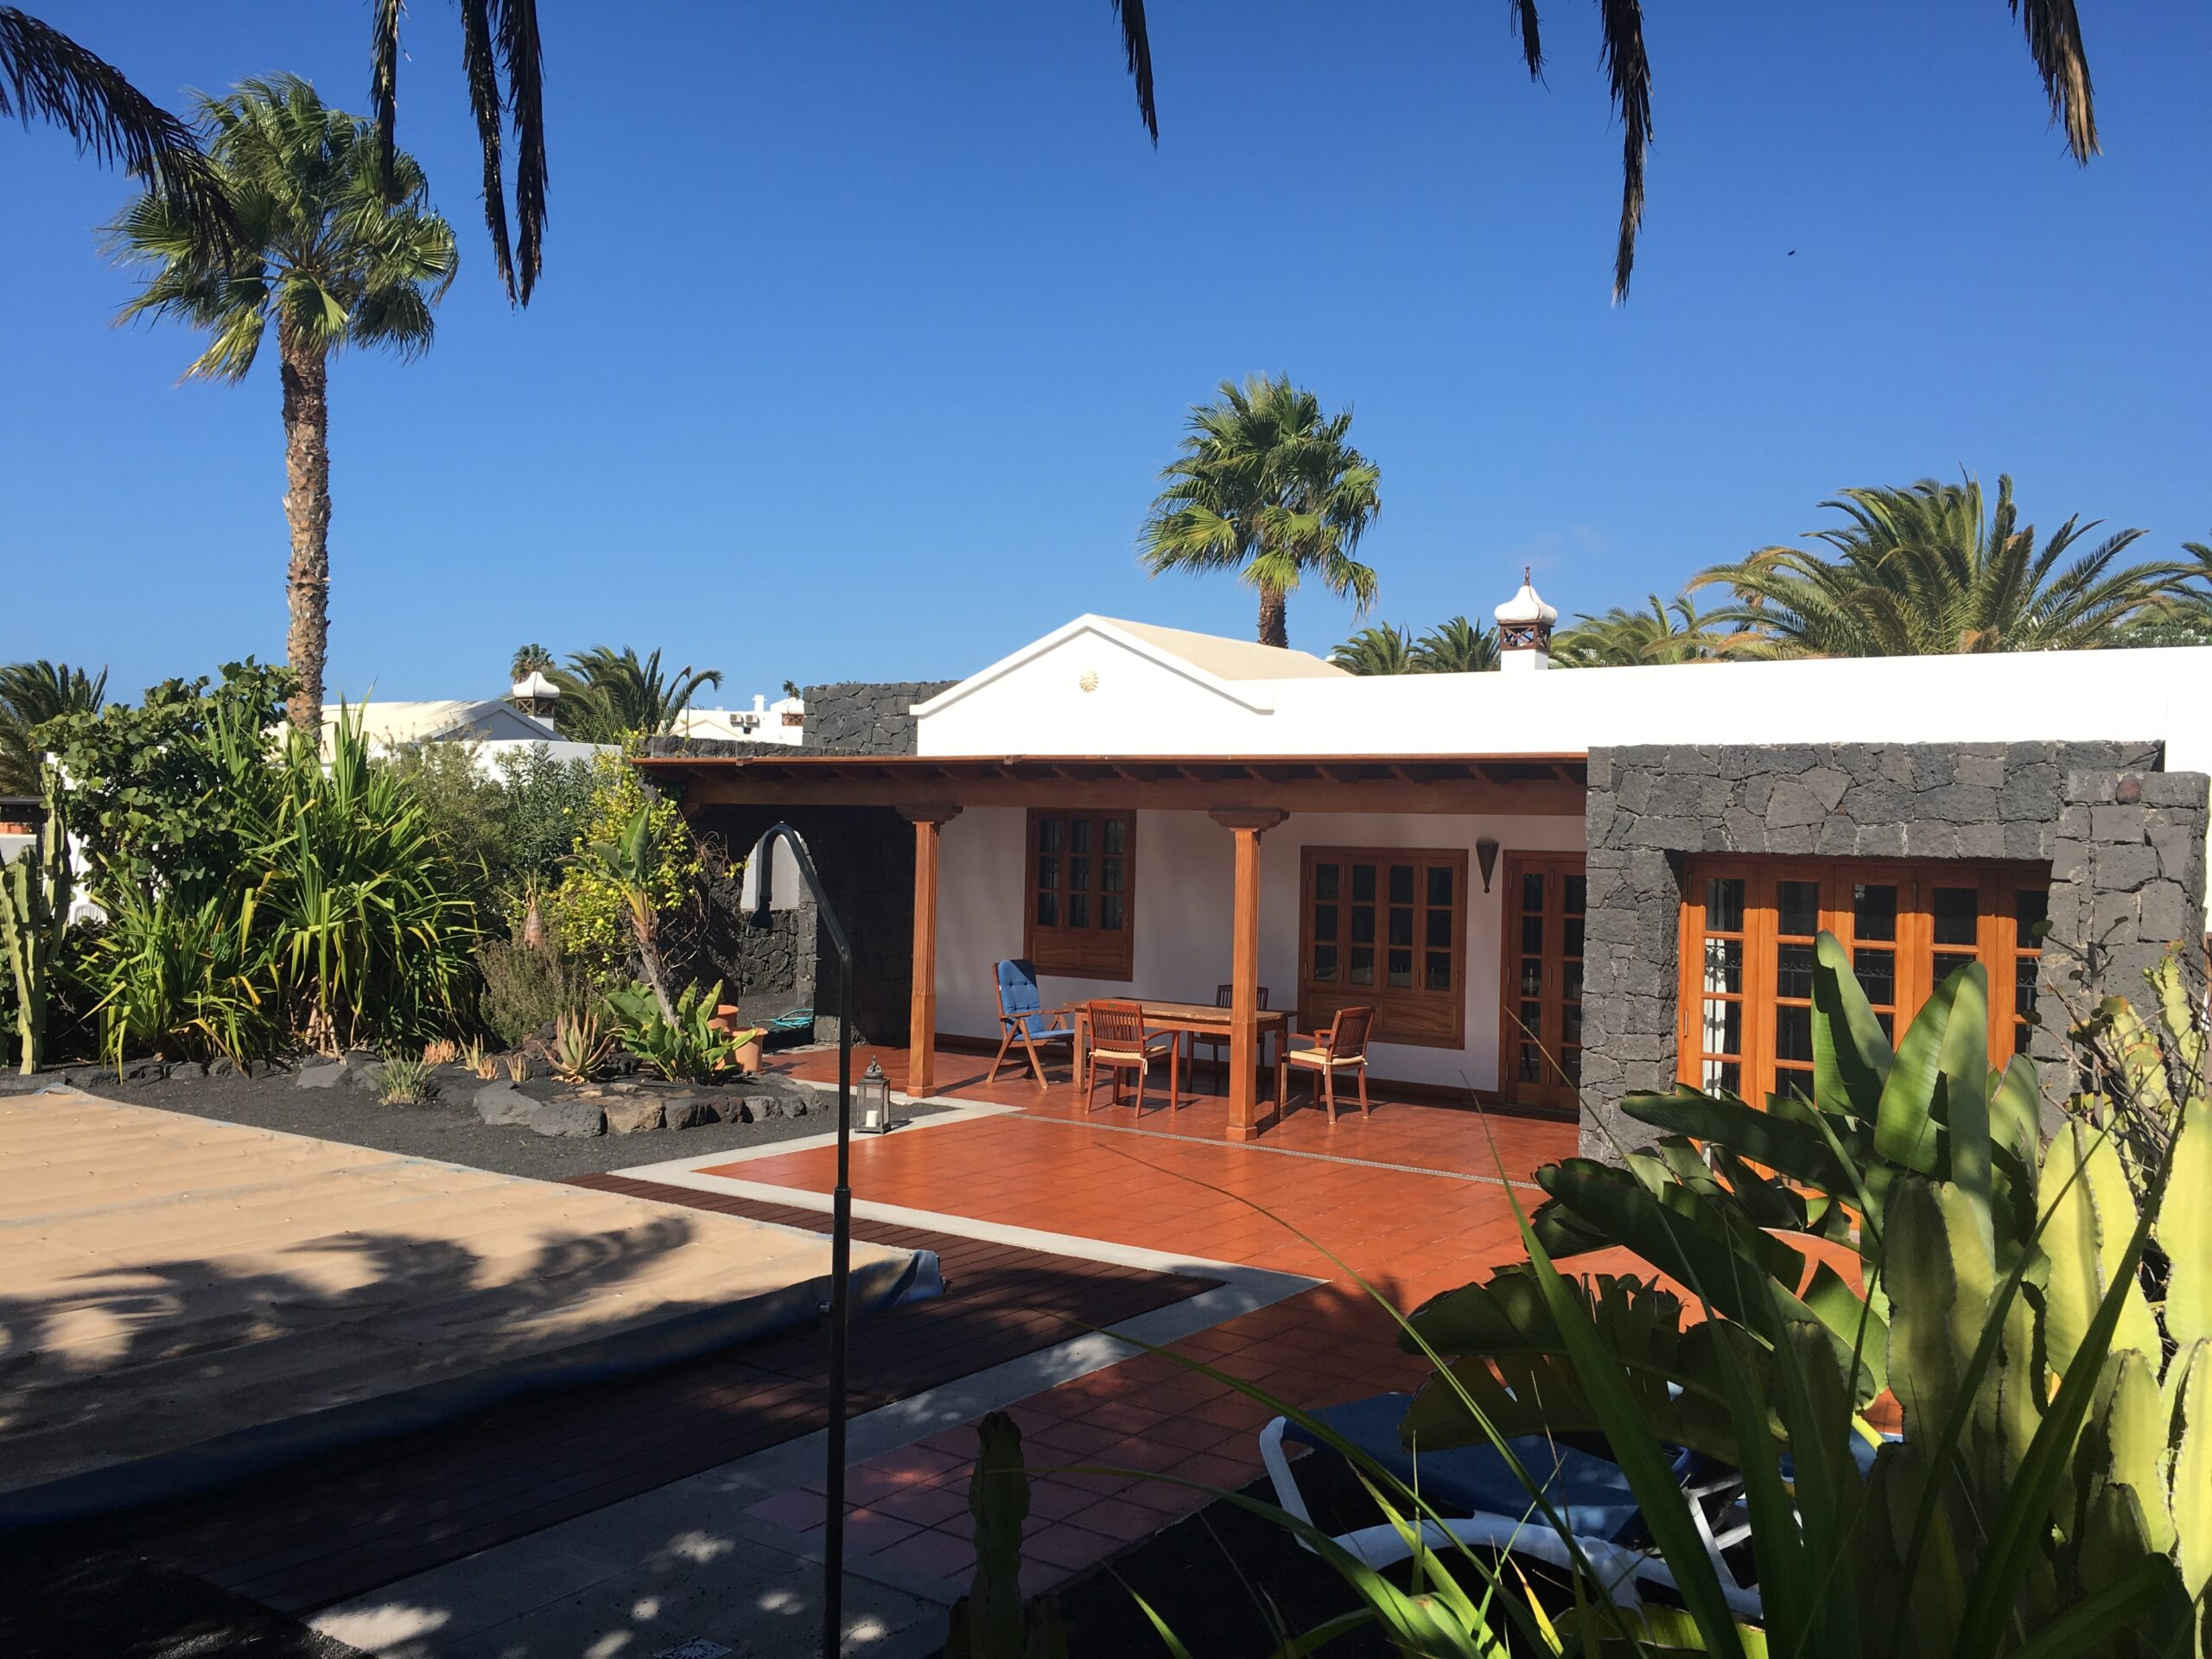 Detached 2 Bedroom Villa in Las Coloradas with Private Pool, Stunning Mountain Views and Great Potential